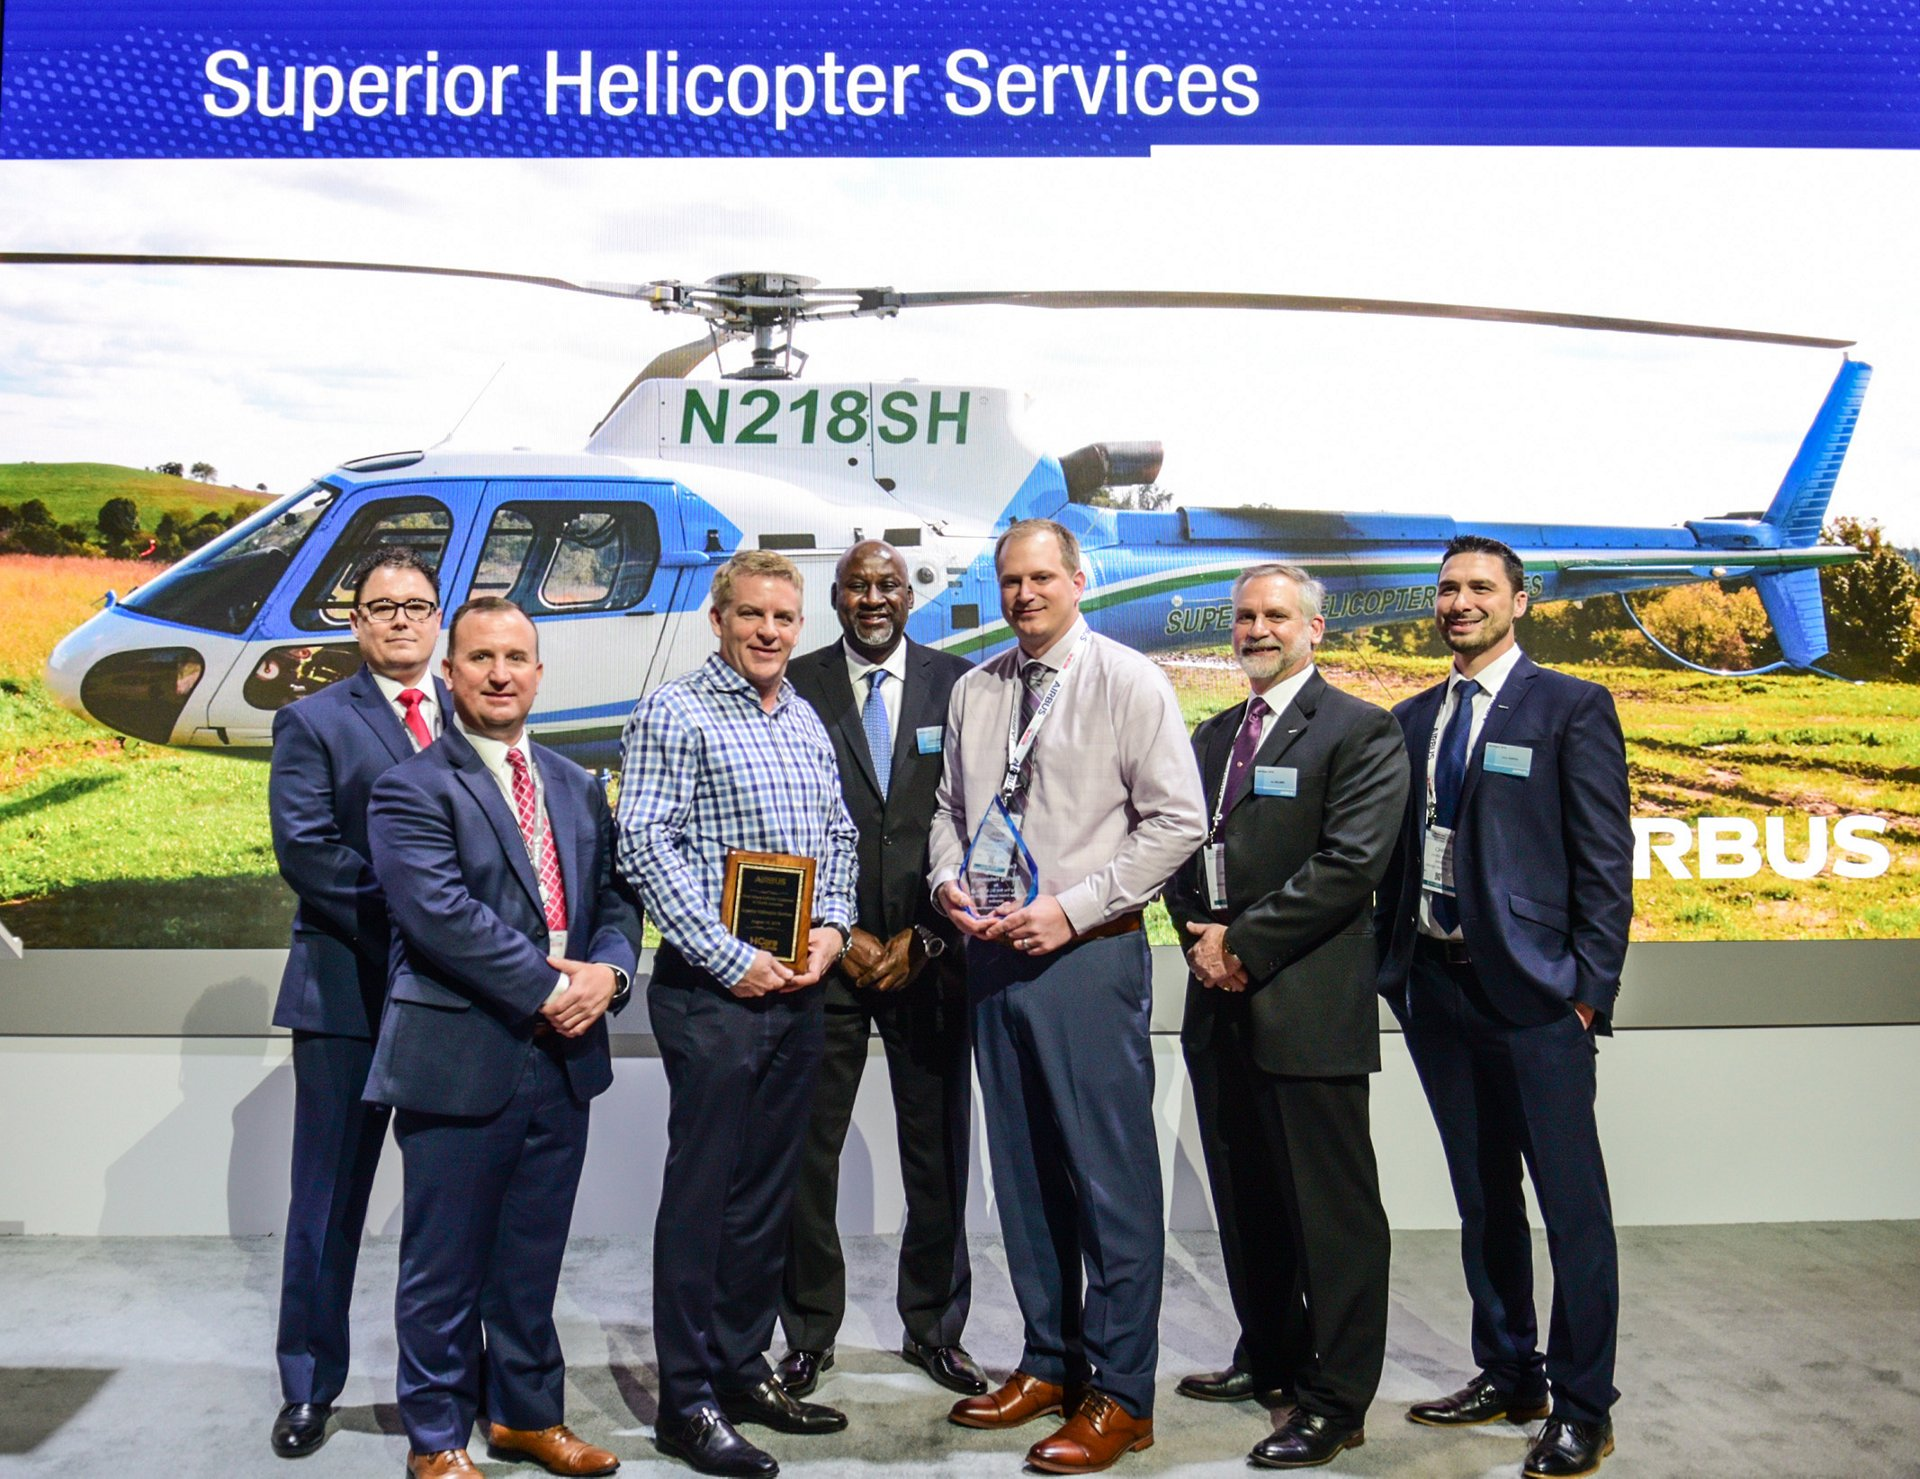 Superior Helicopter has put its trust in Airbus Helicopters for the entirety of its fleet availability needs by signing the first HCare Infinite contract in North America. It will also take delivery of additional H125s by Airbus this year.